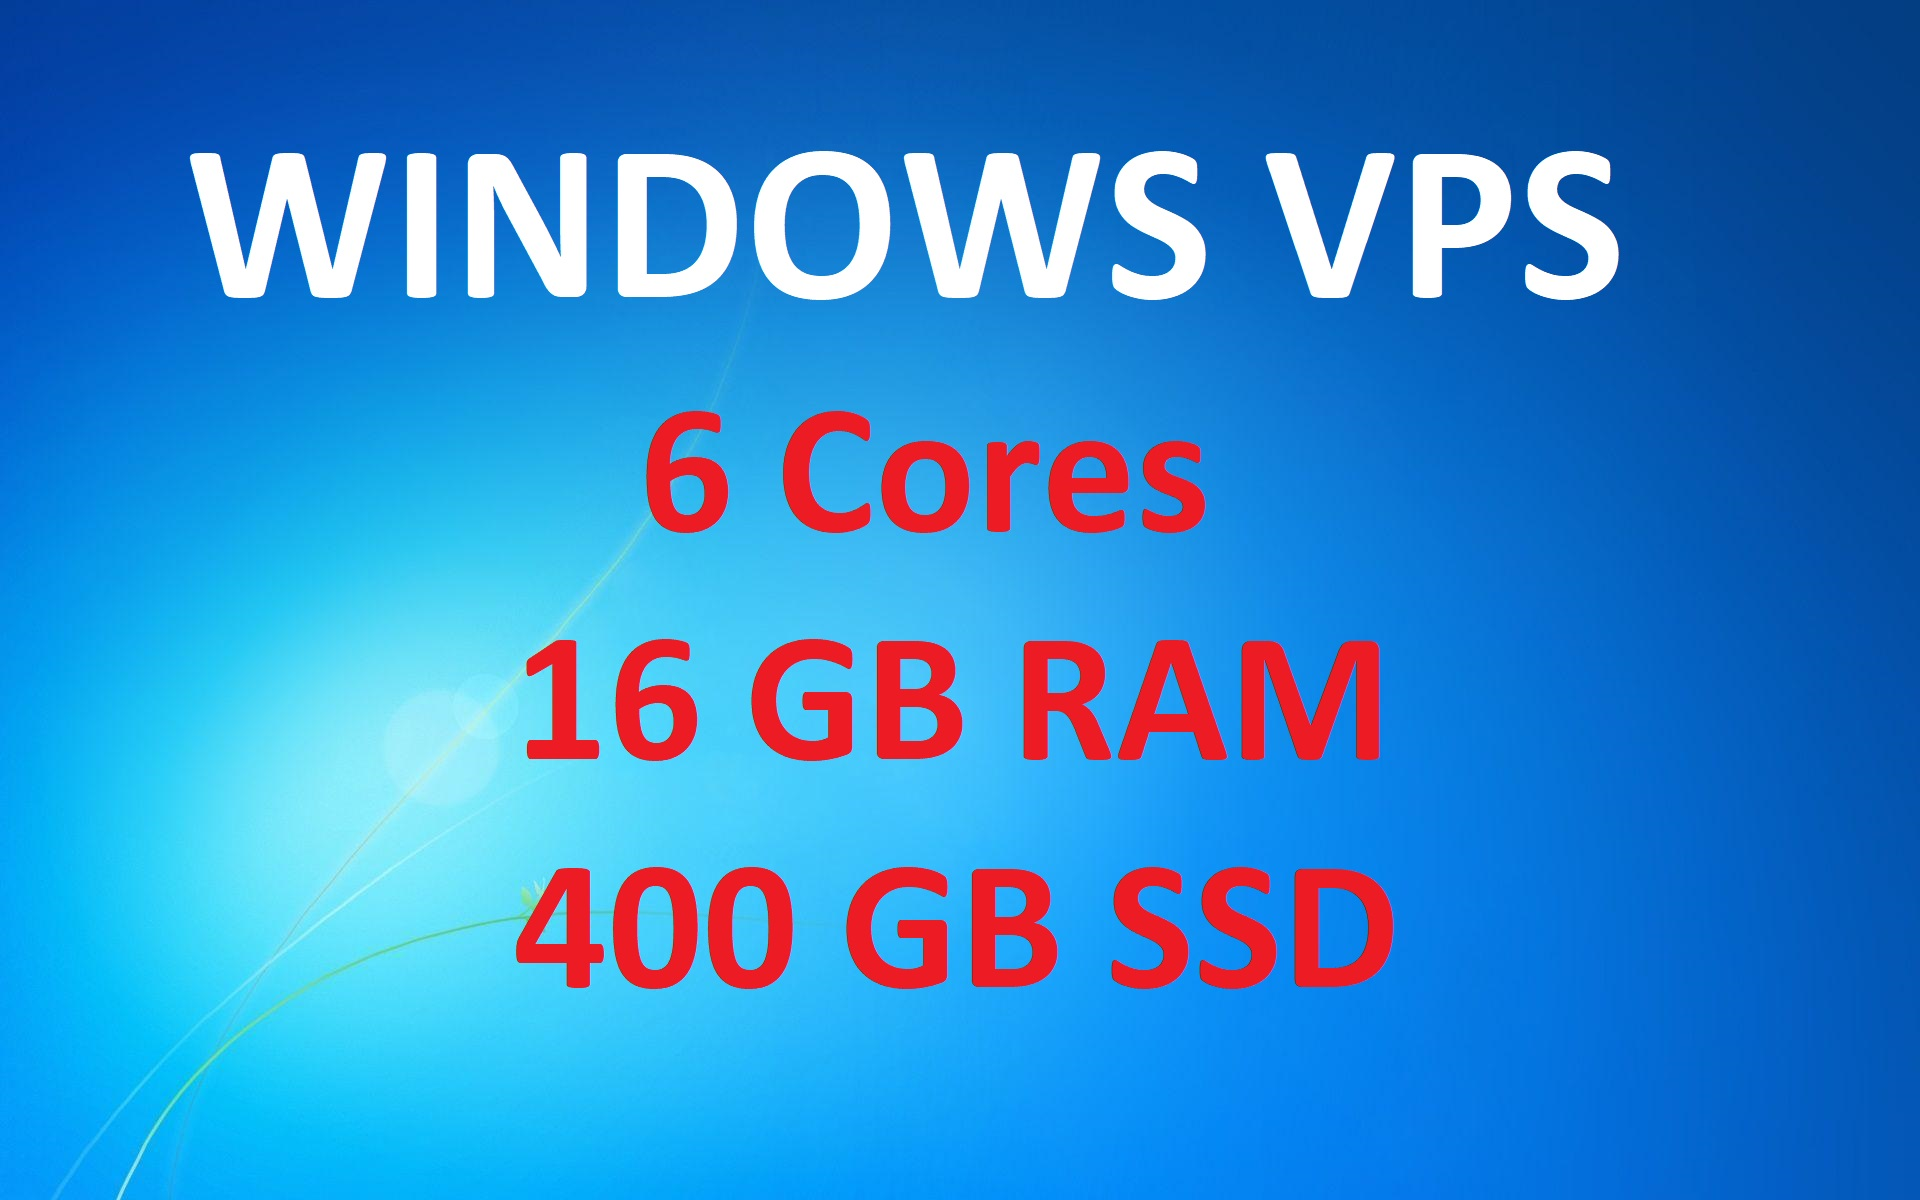 RDP Windows VPS with 400GB and 16GB RAM